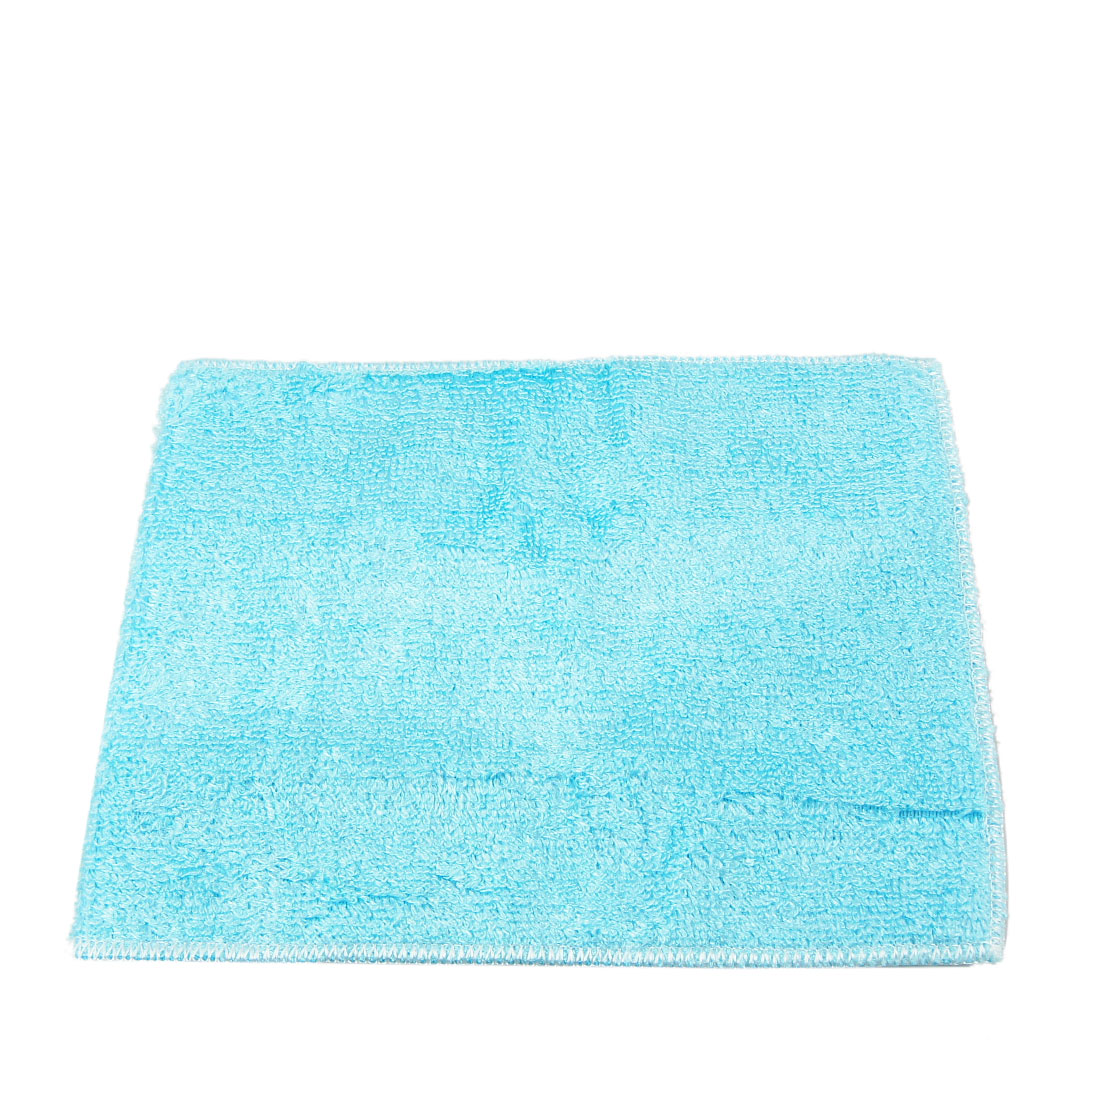 Blue Home Kitchen Dish Bowl Rectangle Shape Hand Cleaning Cloth Towel